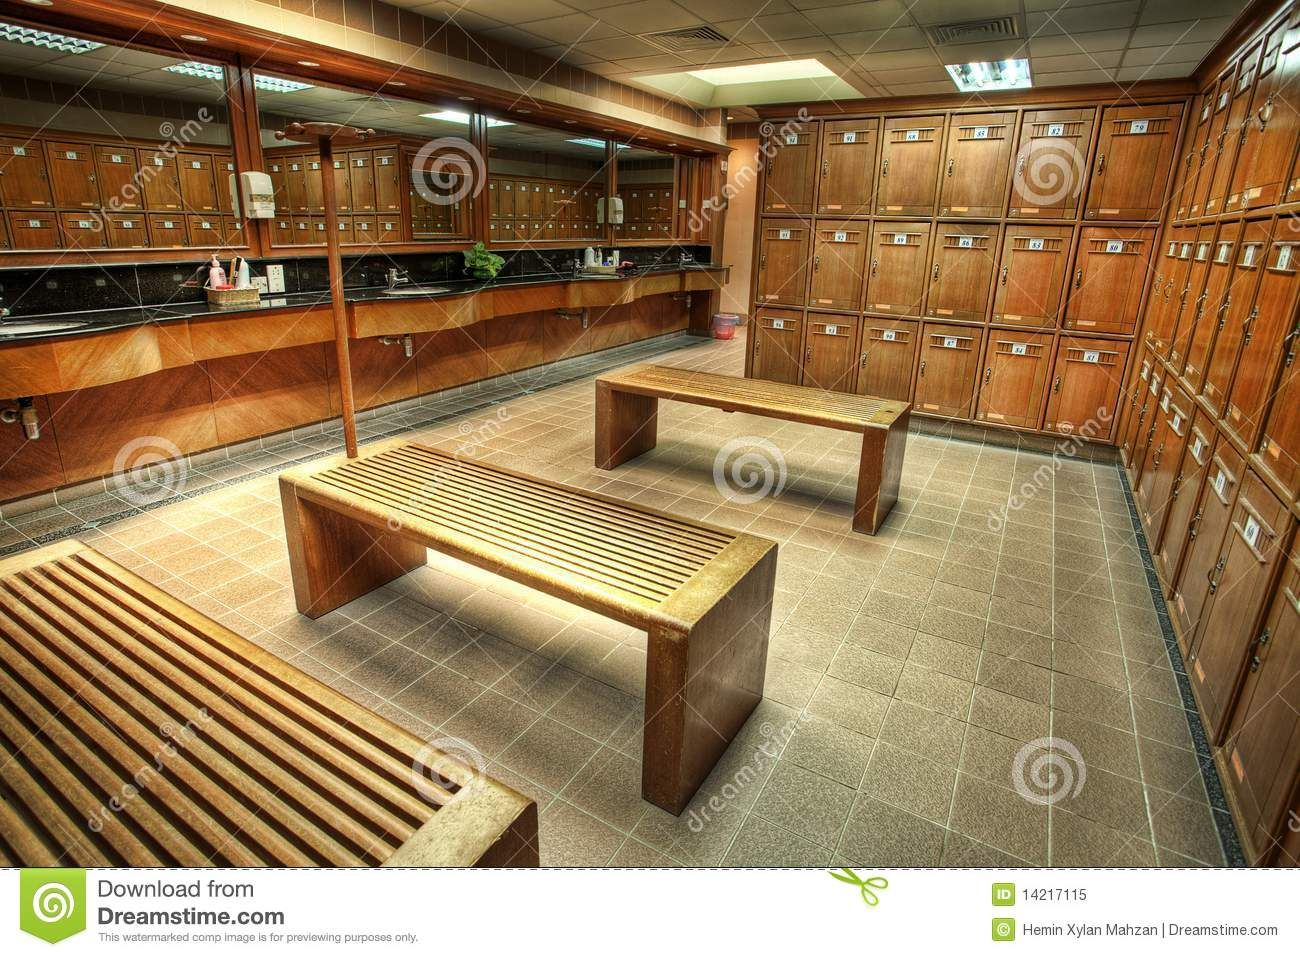 country club locker rooms | interior shot of a locker or changing